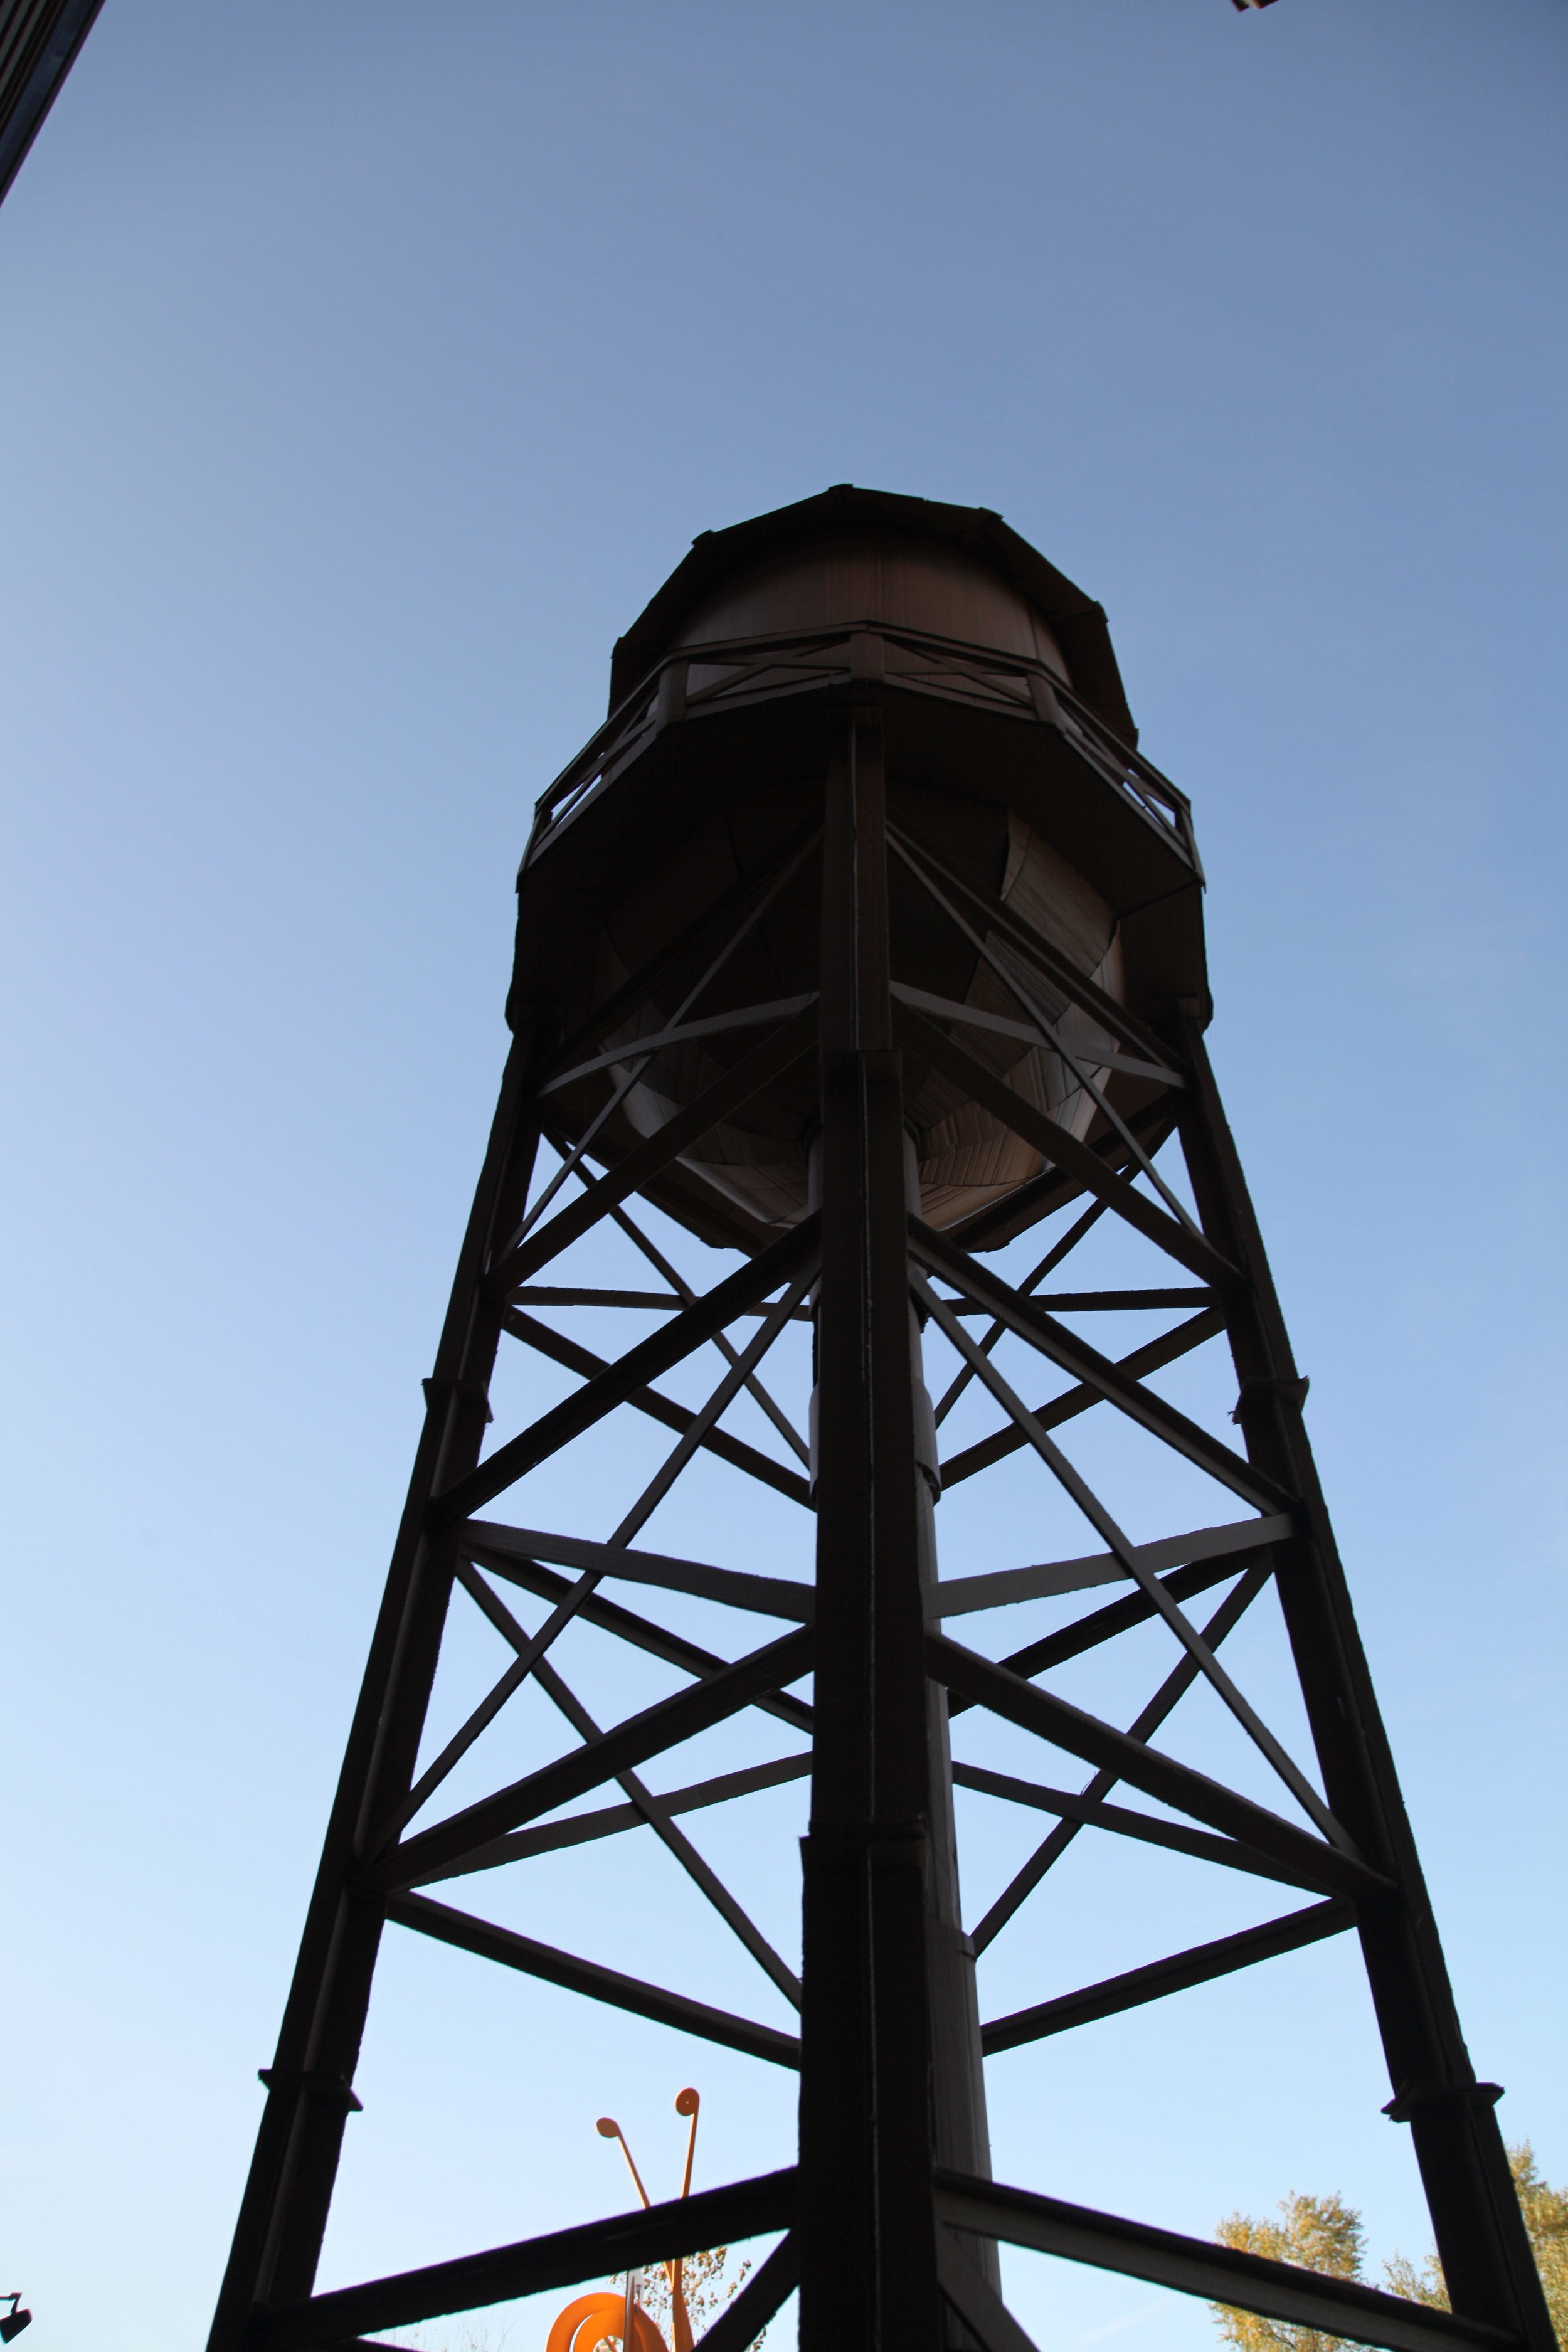 WaterTower1.jpg